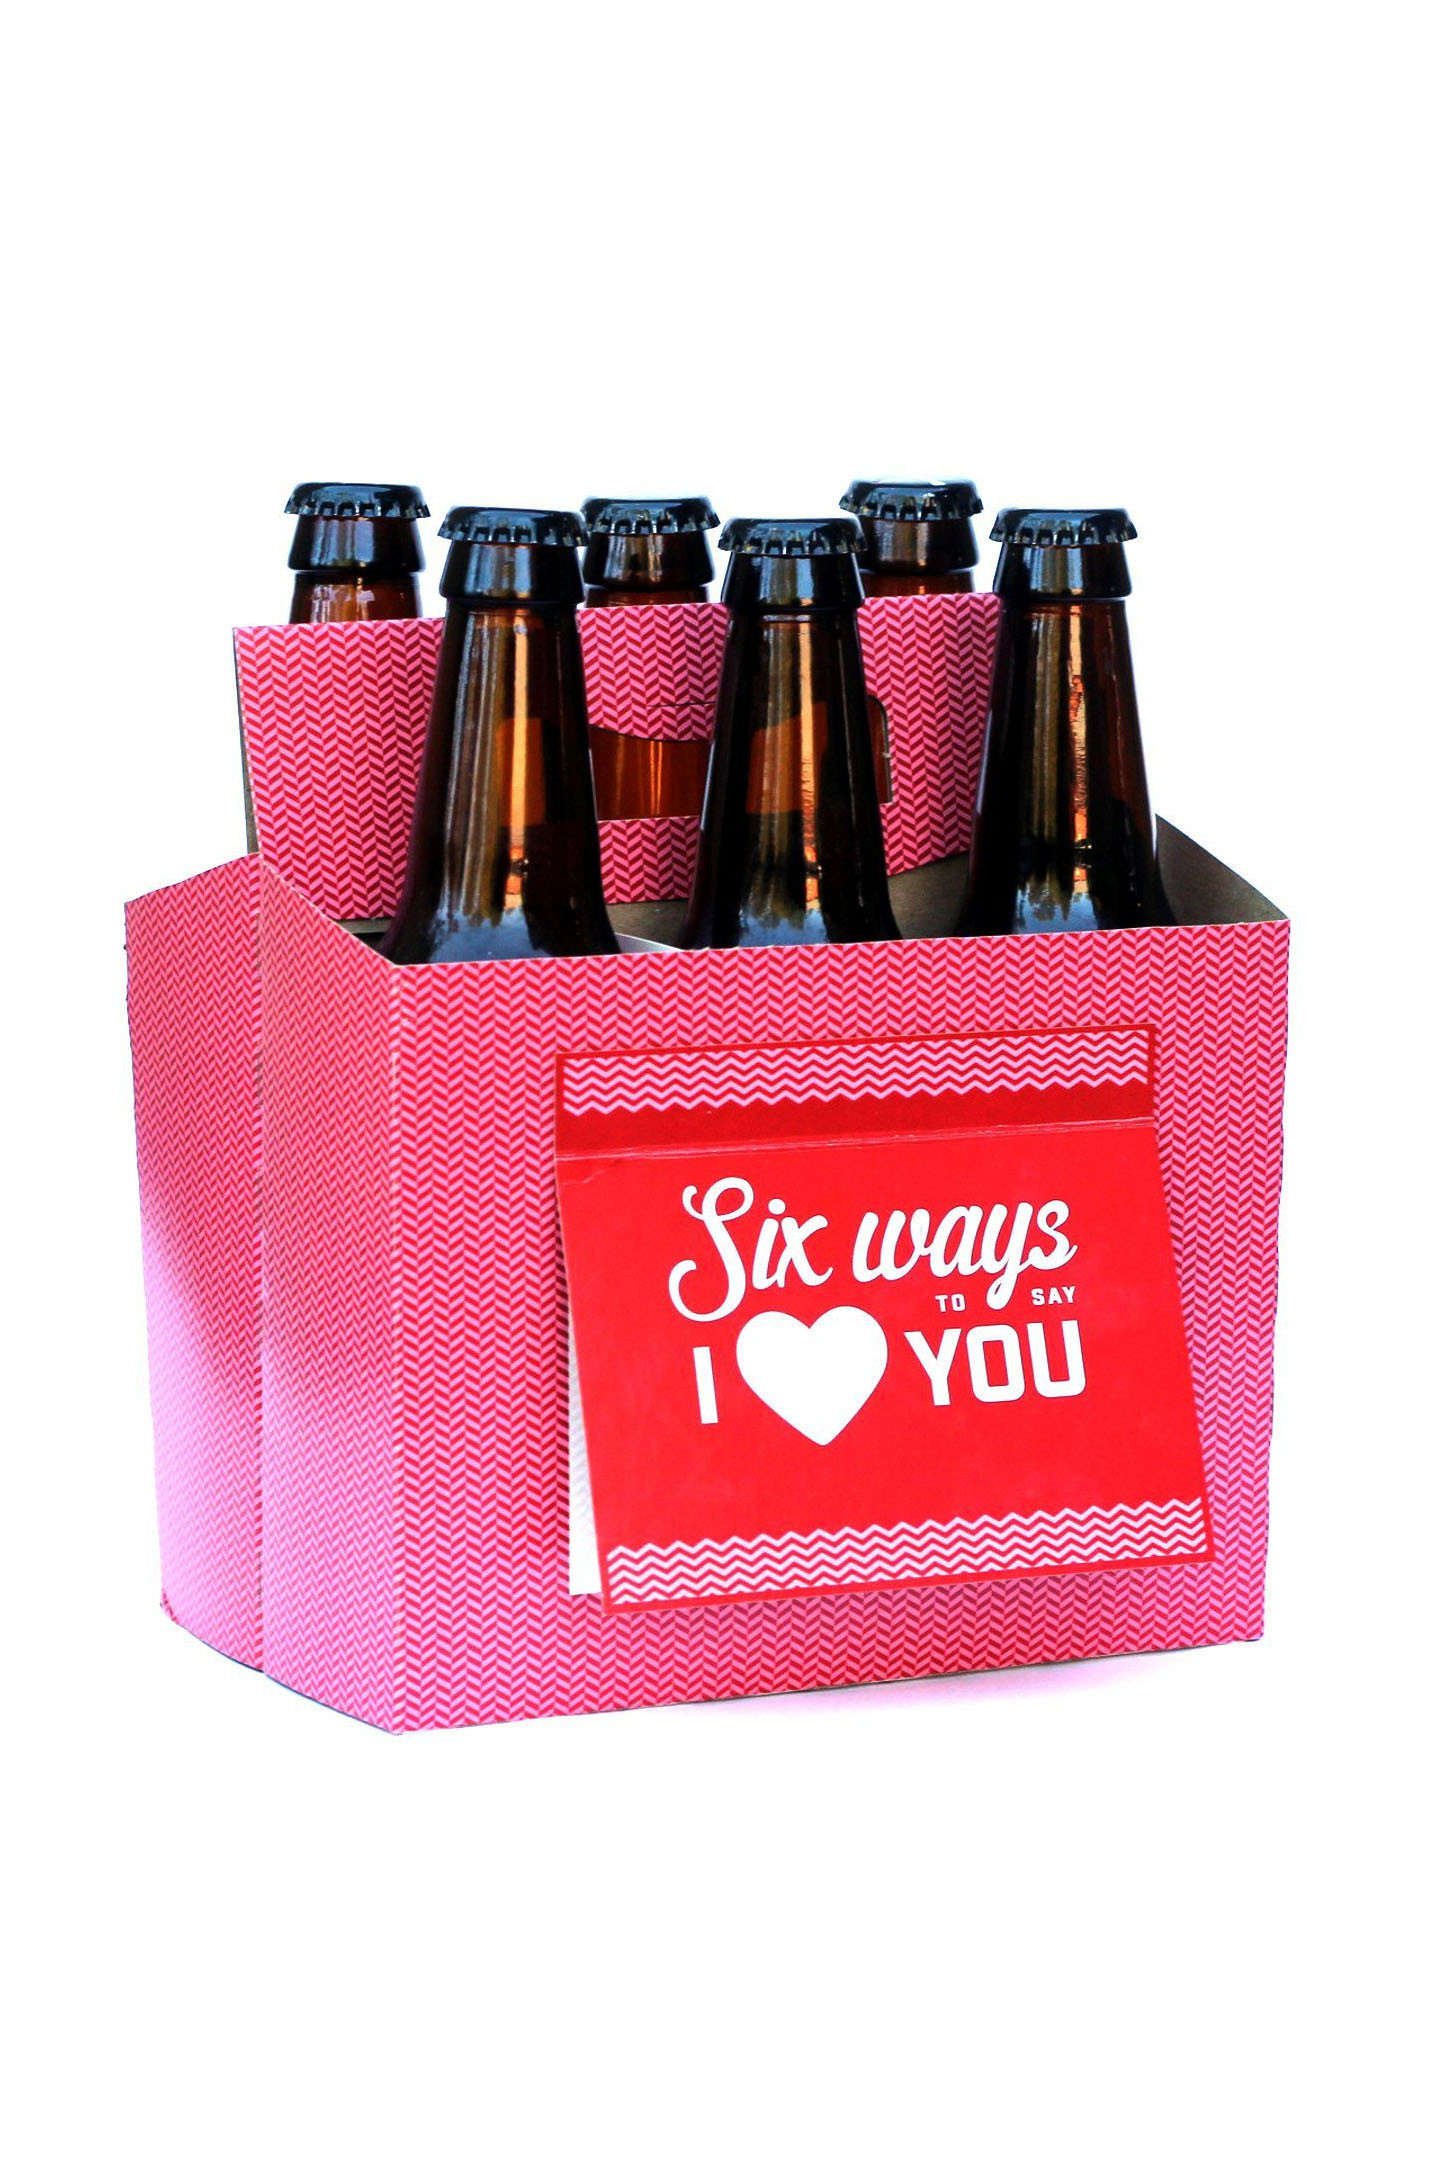 Valentines Day Gift Ideas  30 Best Valentine s Day Gifts for Him 2017 Good Ideas